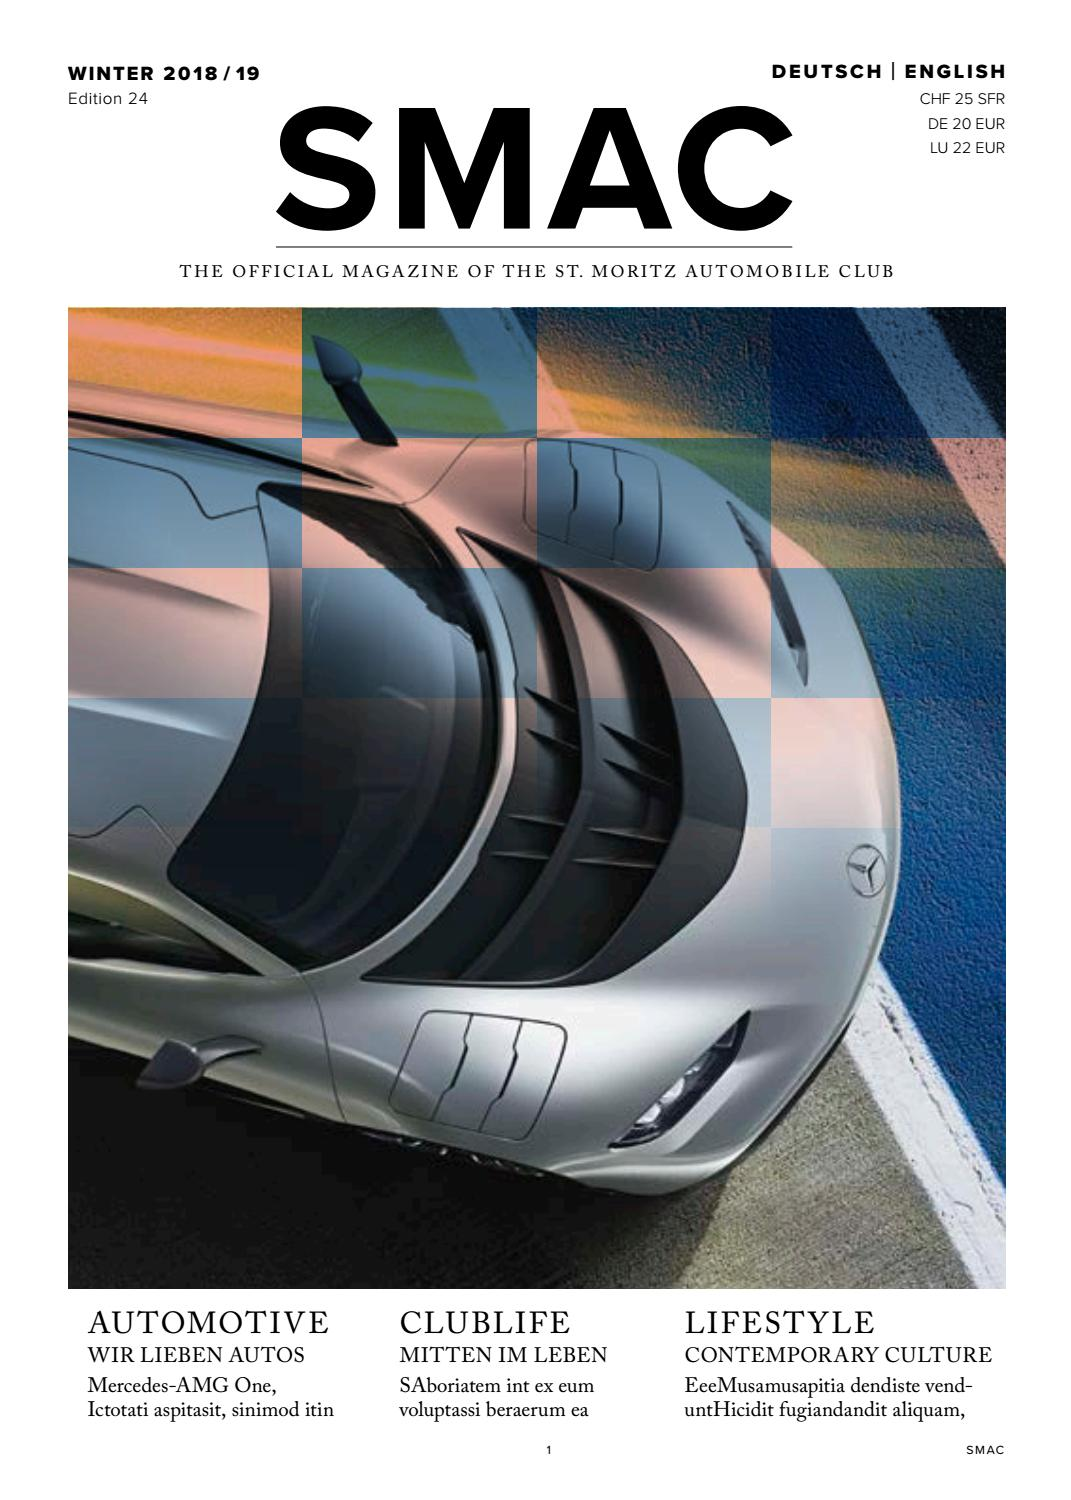 SMAC - The official magazine of the St. Moritz Automobile ...